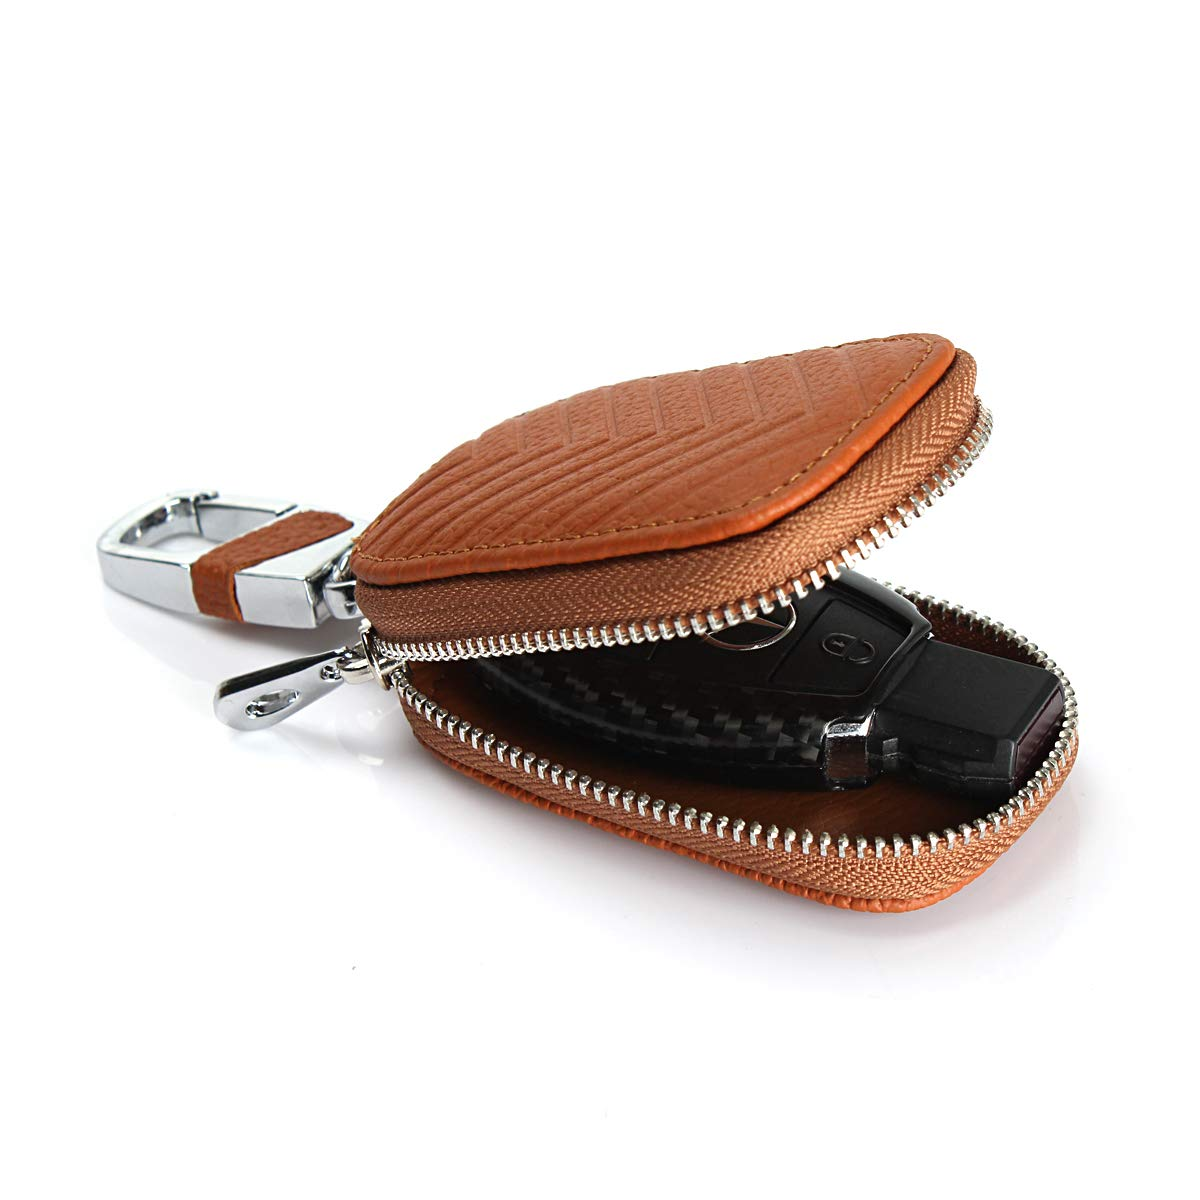 Jaorty Car Key Chain Bag Genuine Leather Key Chains Case Smart Keychain Coin Holder Case Cover Pouch Remote Fob Bag Keyring Wallet Zipper Case Khaki